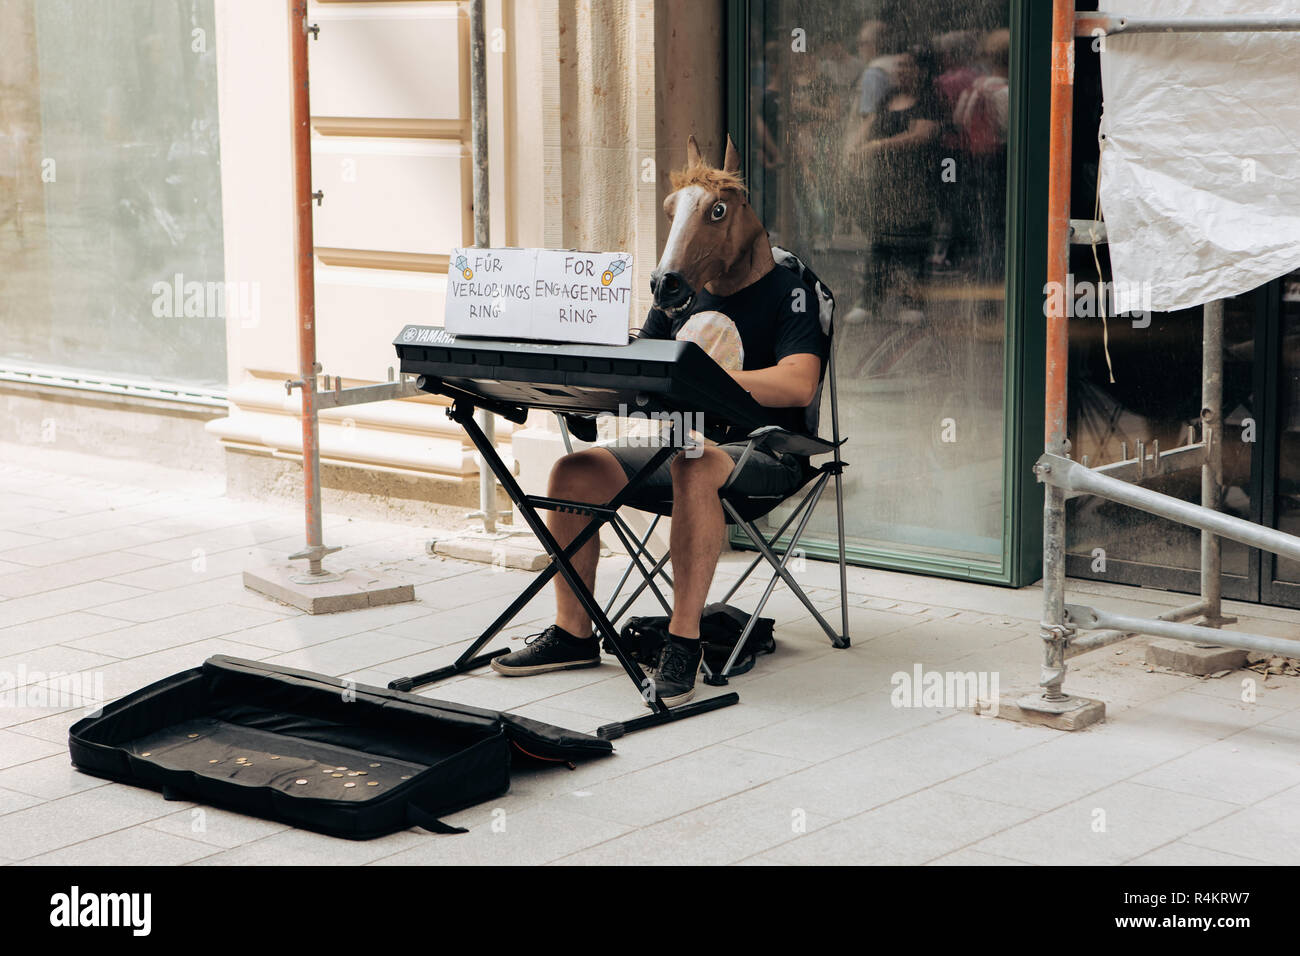 Germany, Leipzig, September 6, 2018: A creative musician with a horse's head plays on a synthesizer on Leipzig street to collect money for an engagement ring. - Stock Image